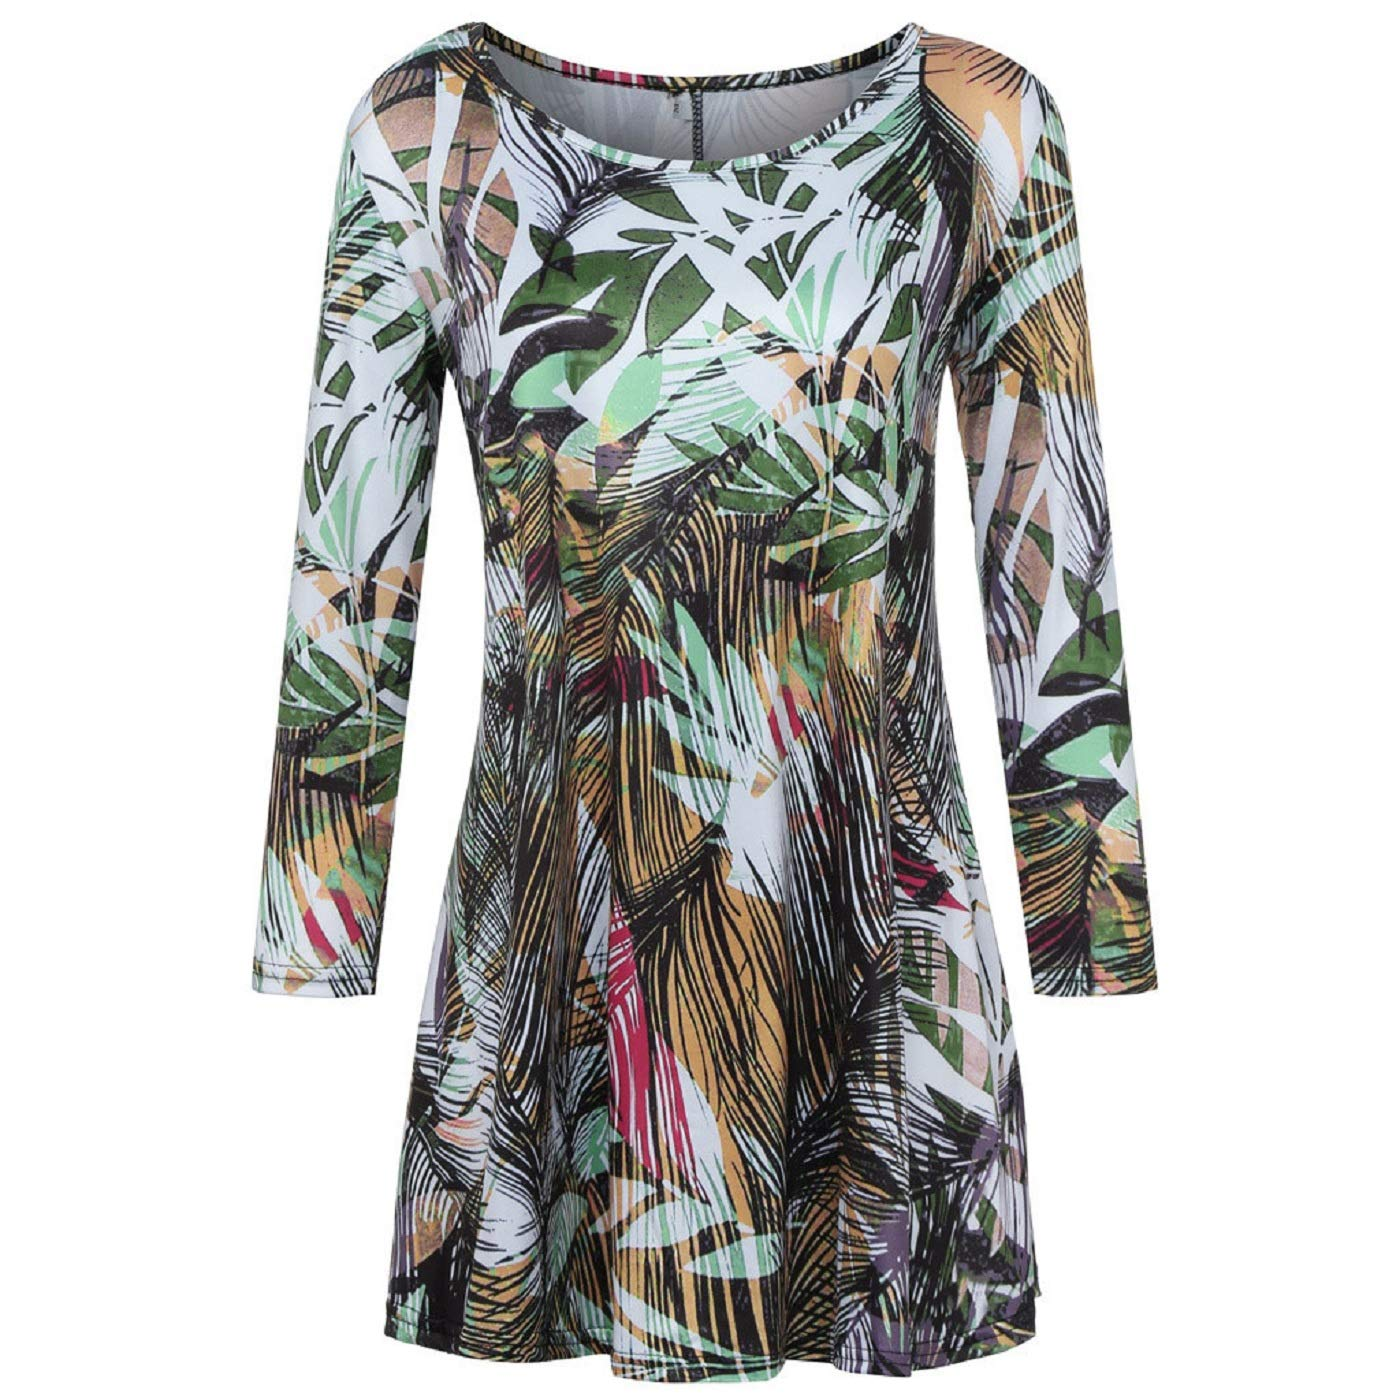 Wintialy Fashion Womens Casual Floral Print Shirts 3/4 Sleeves O-Neck Tunic Blouse Tops Army Green